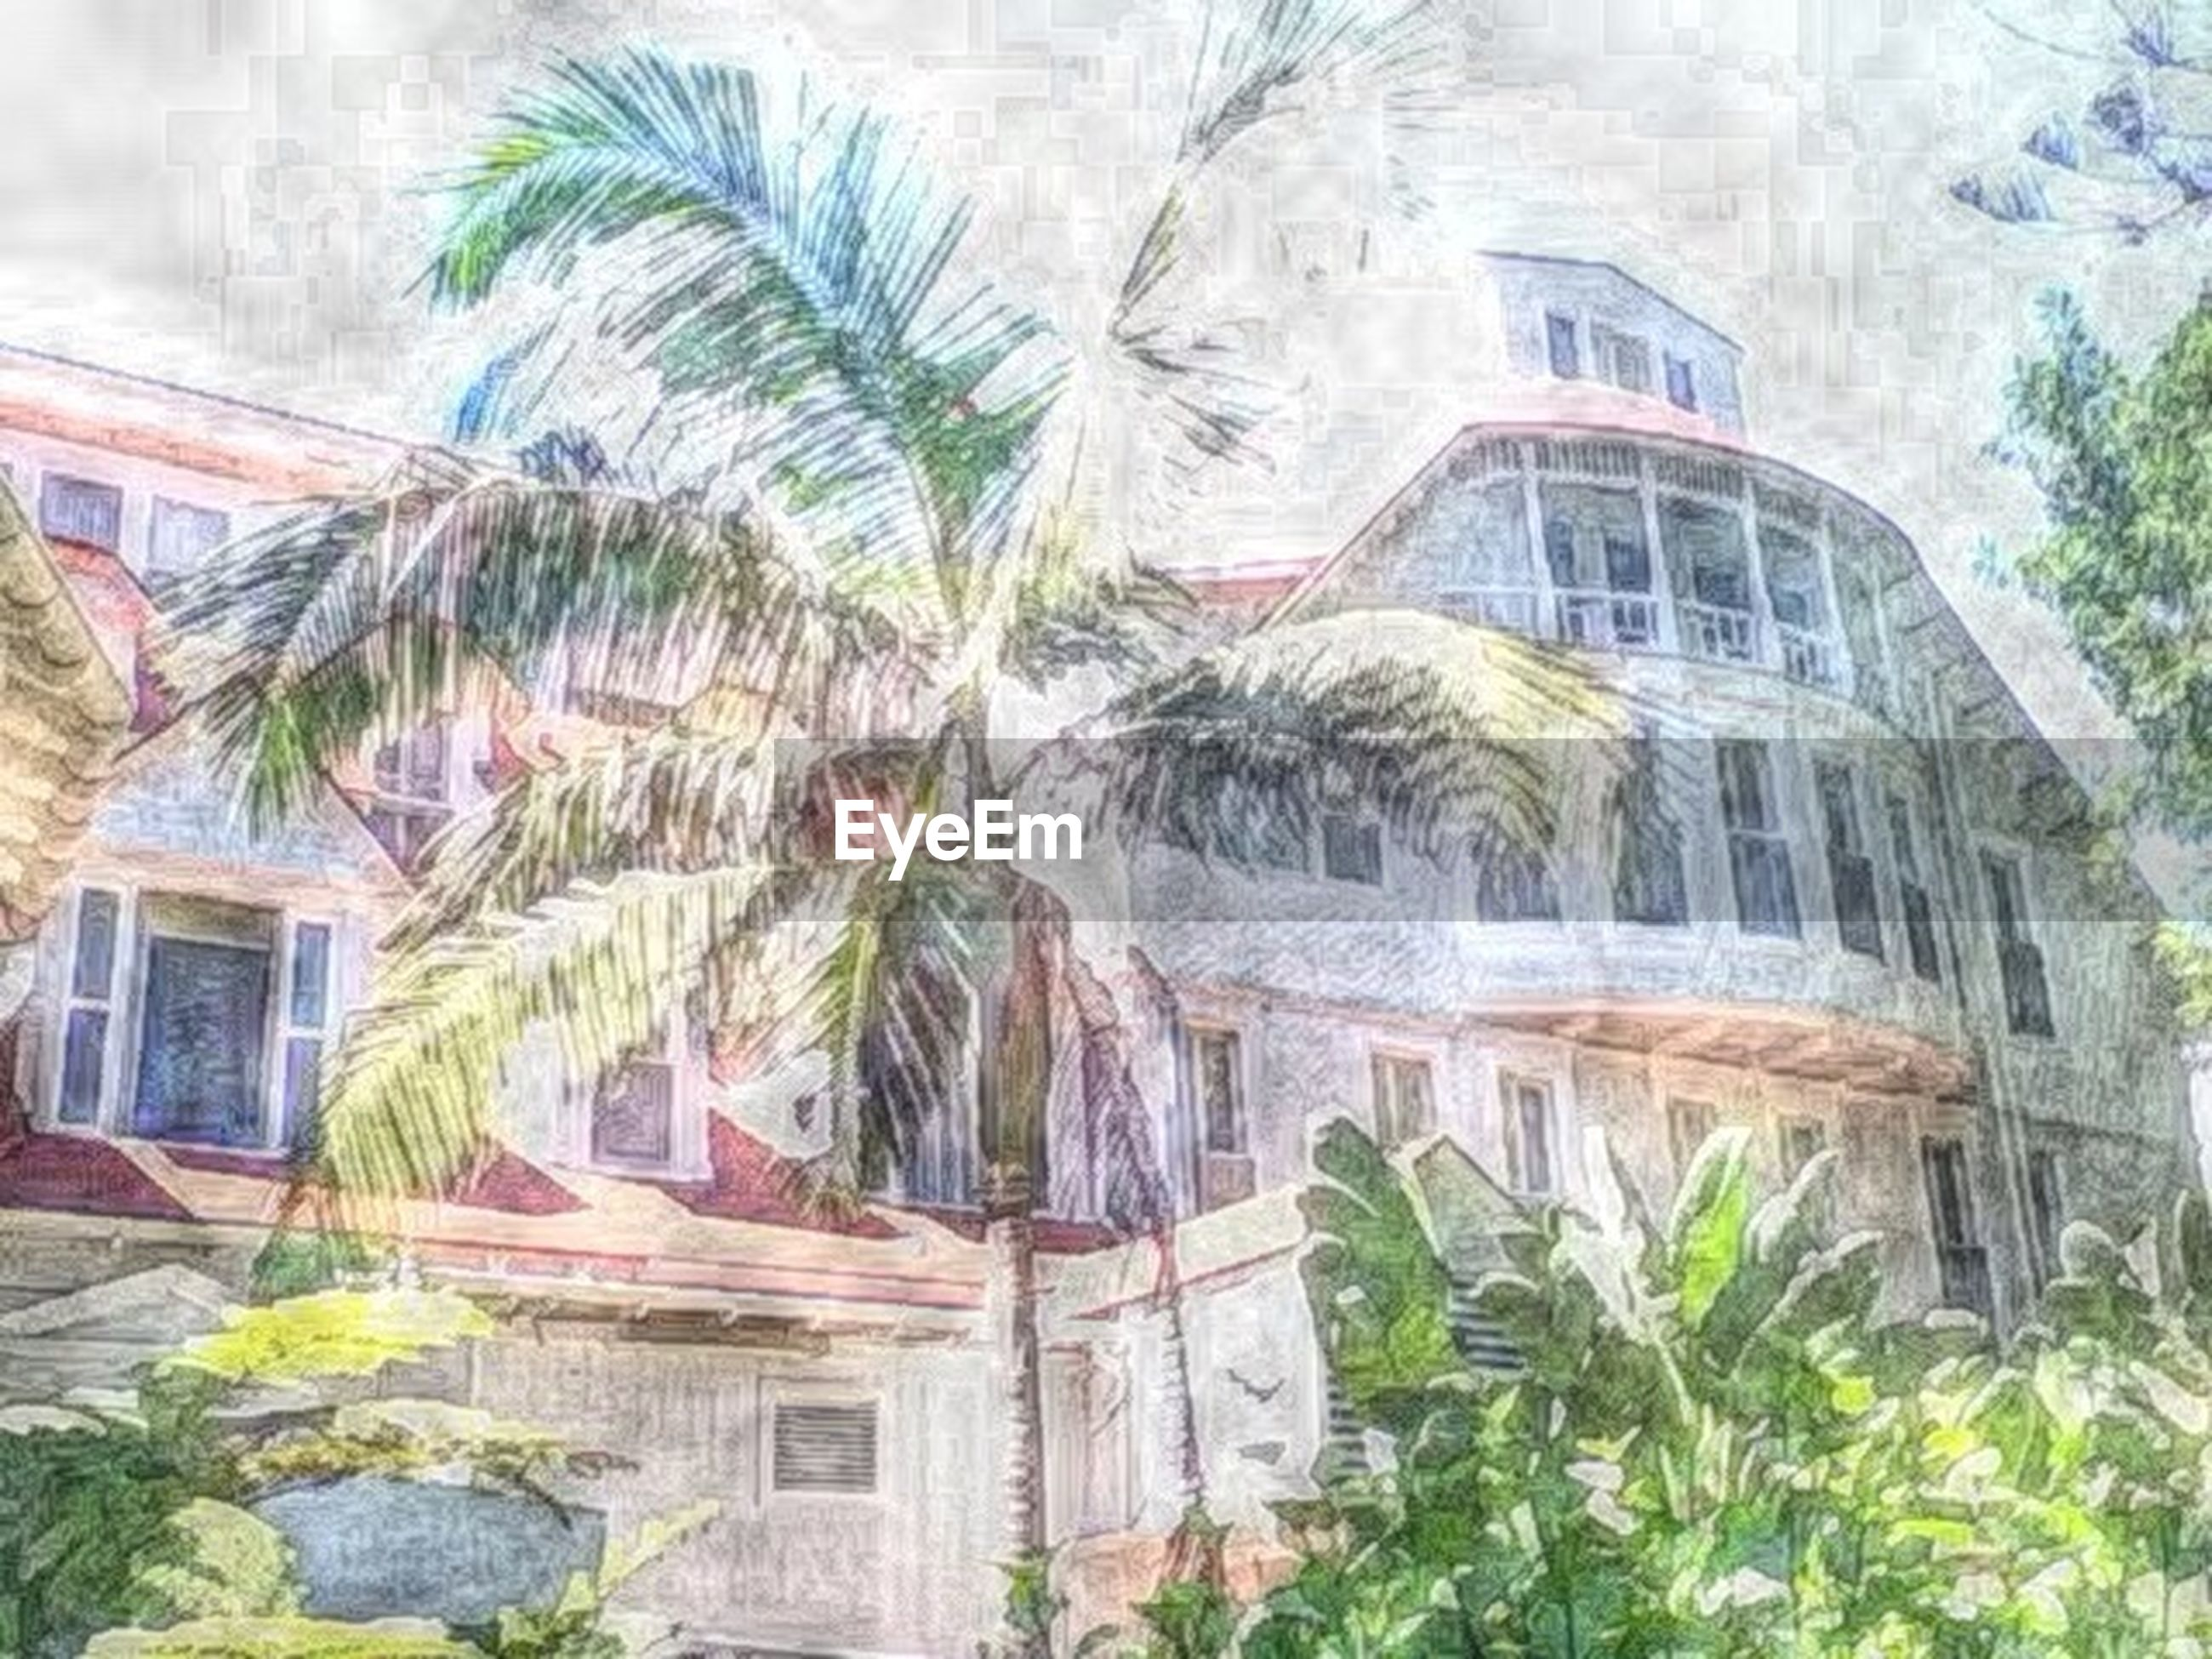 architecture, built structure, building exterior, palm tree, tree, plant, residential building, window, residential structure, house, building, growth, arch, day, city, outdoors, potted plant, no people, wall - building feature, sky